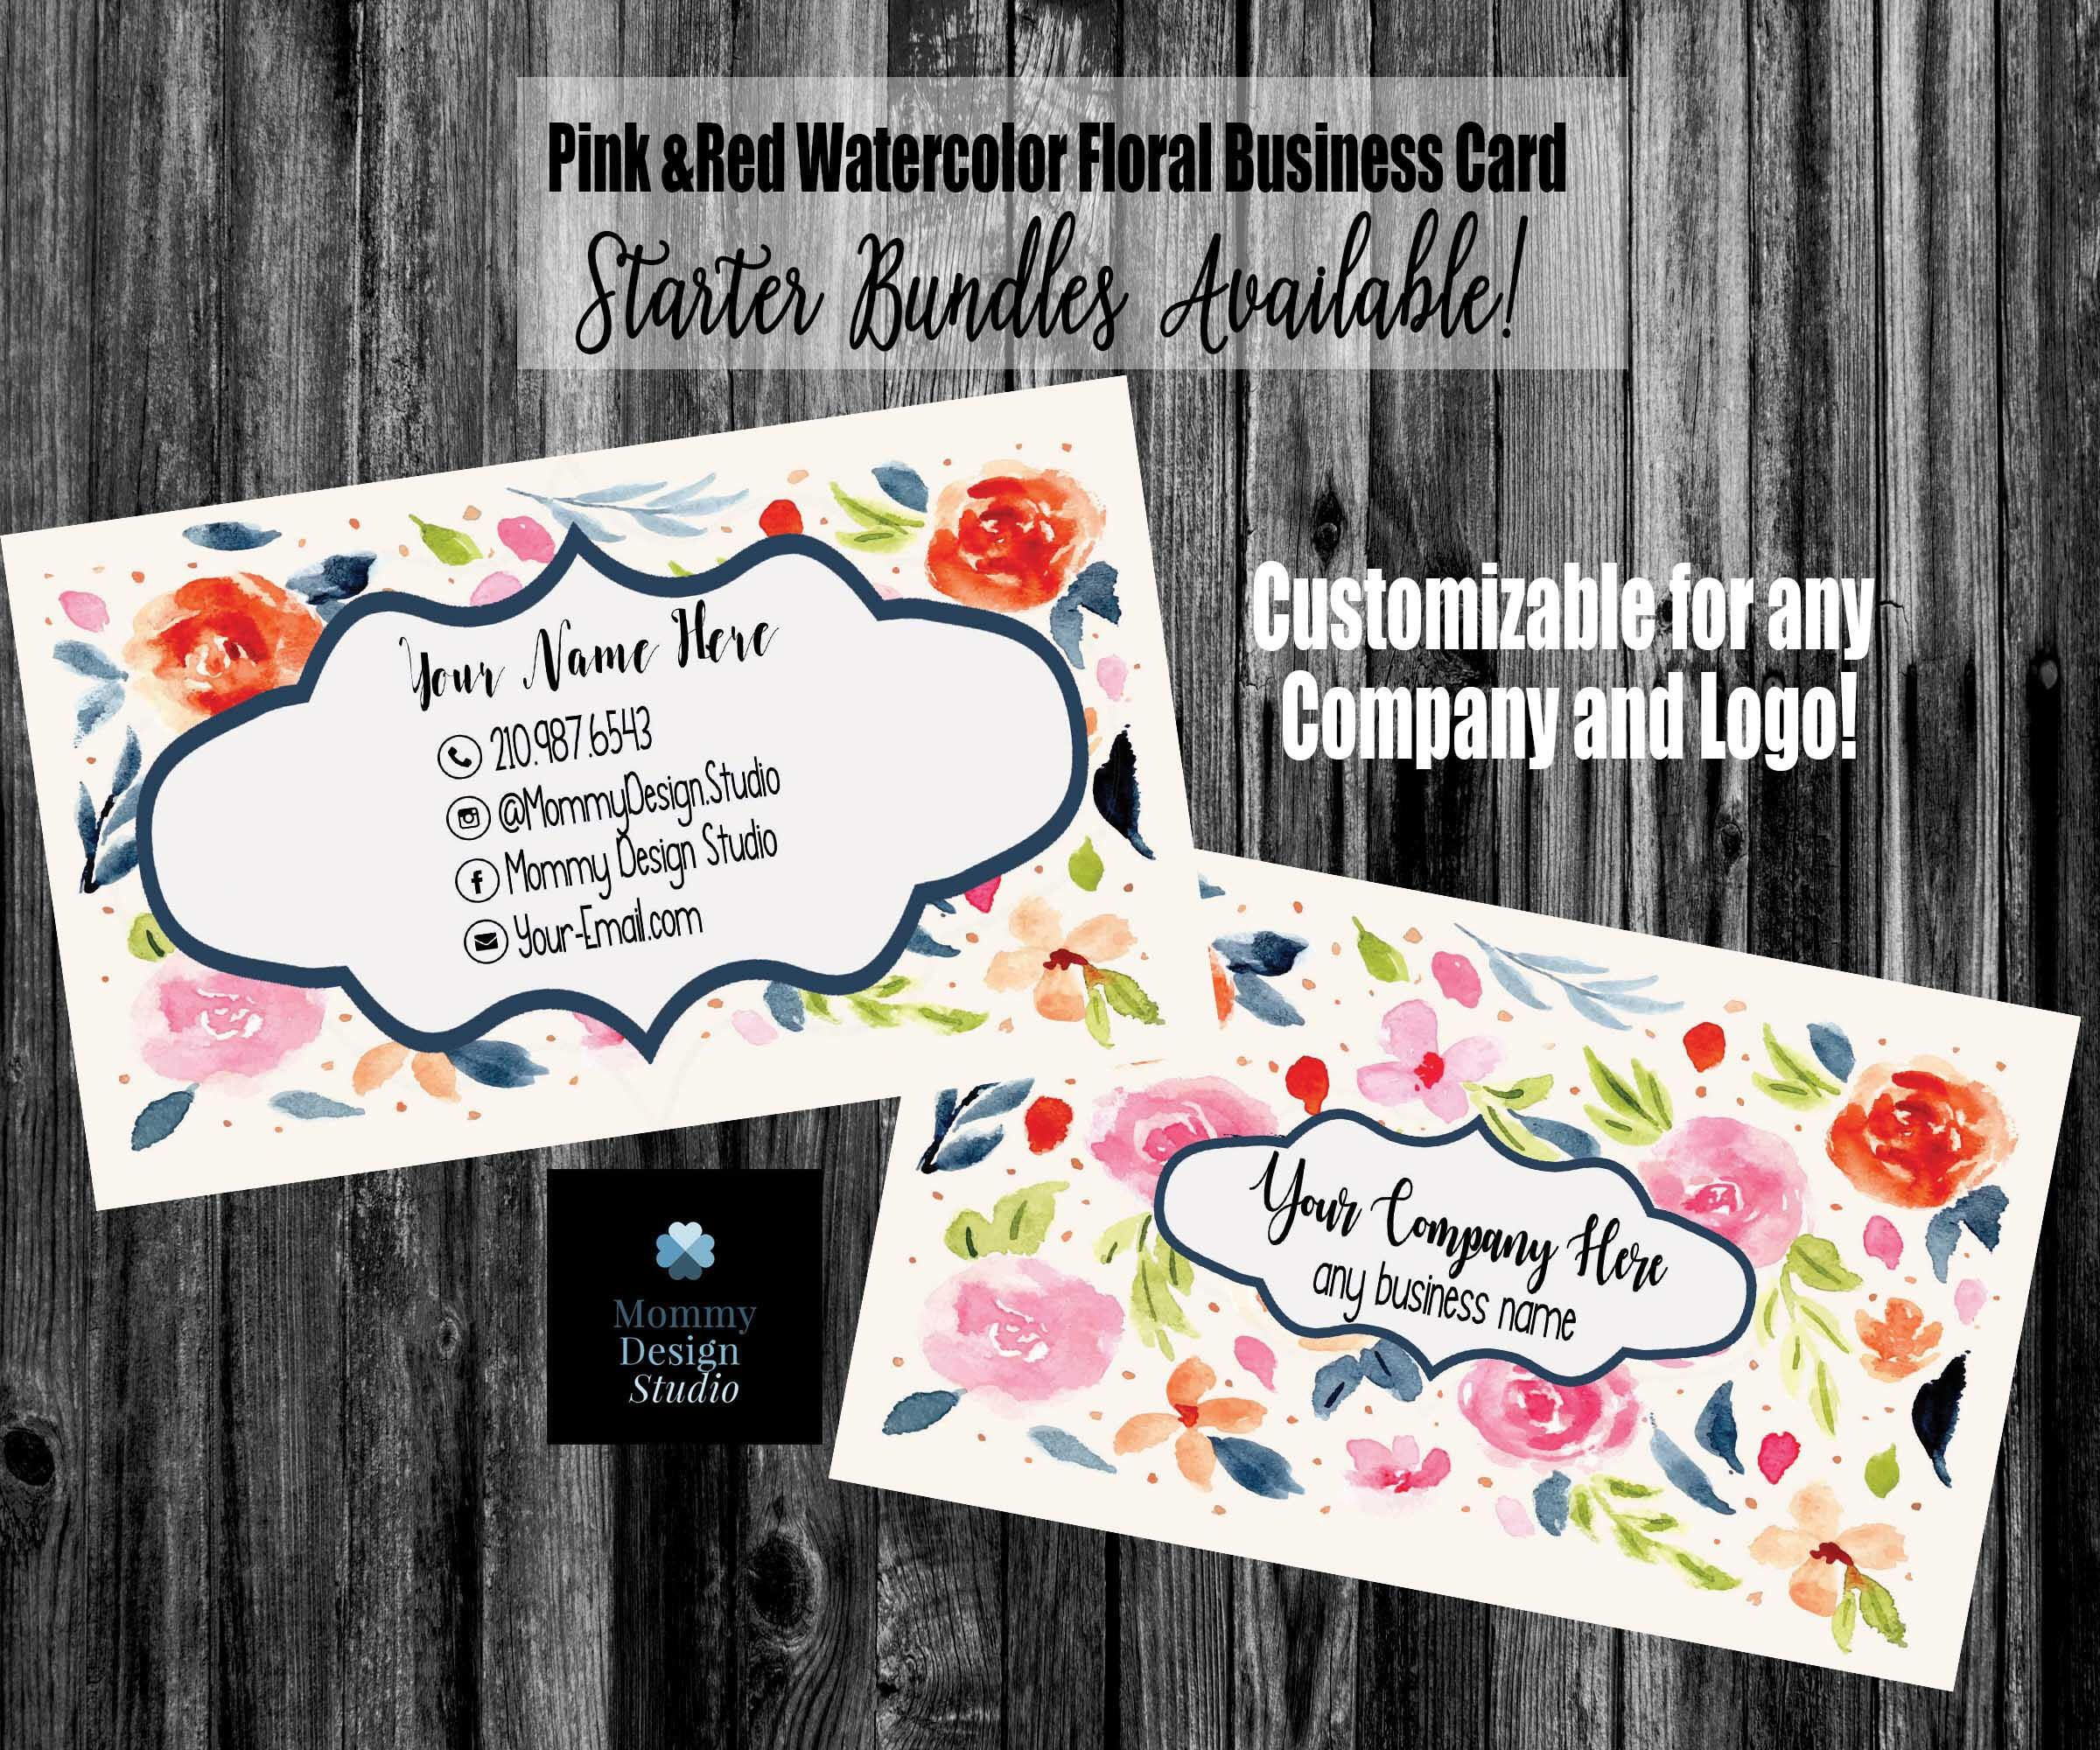 Pink and red watercolor floral business card ho approved compliant pink and red watercolor floral business card ho approved compliant fonts colors available reheart Choice Image